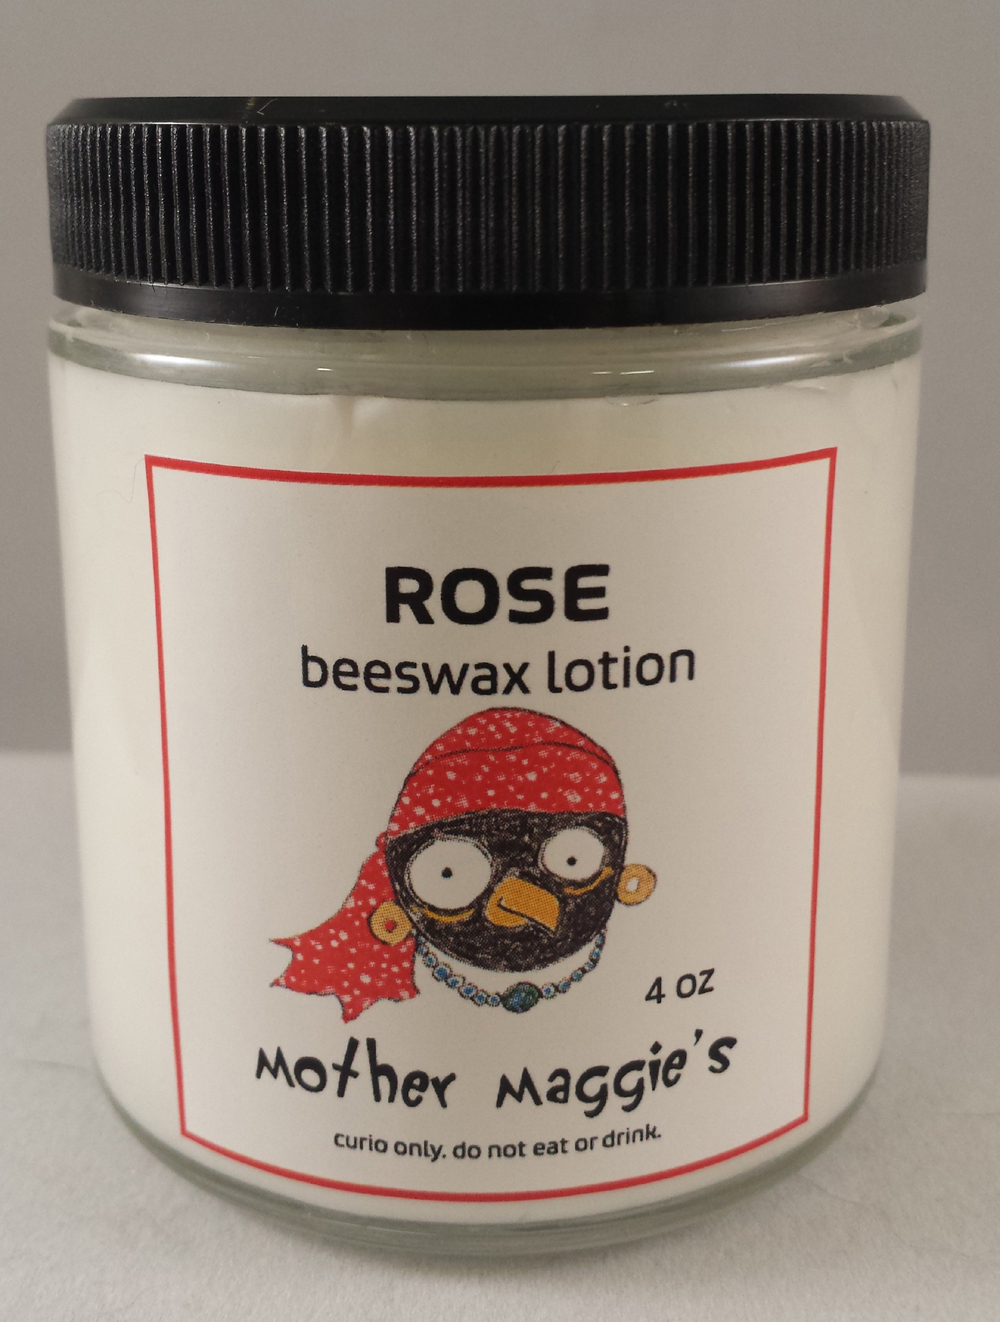 Mother Maggie's Essential Beeswax Lotions